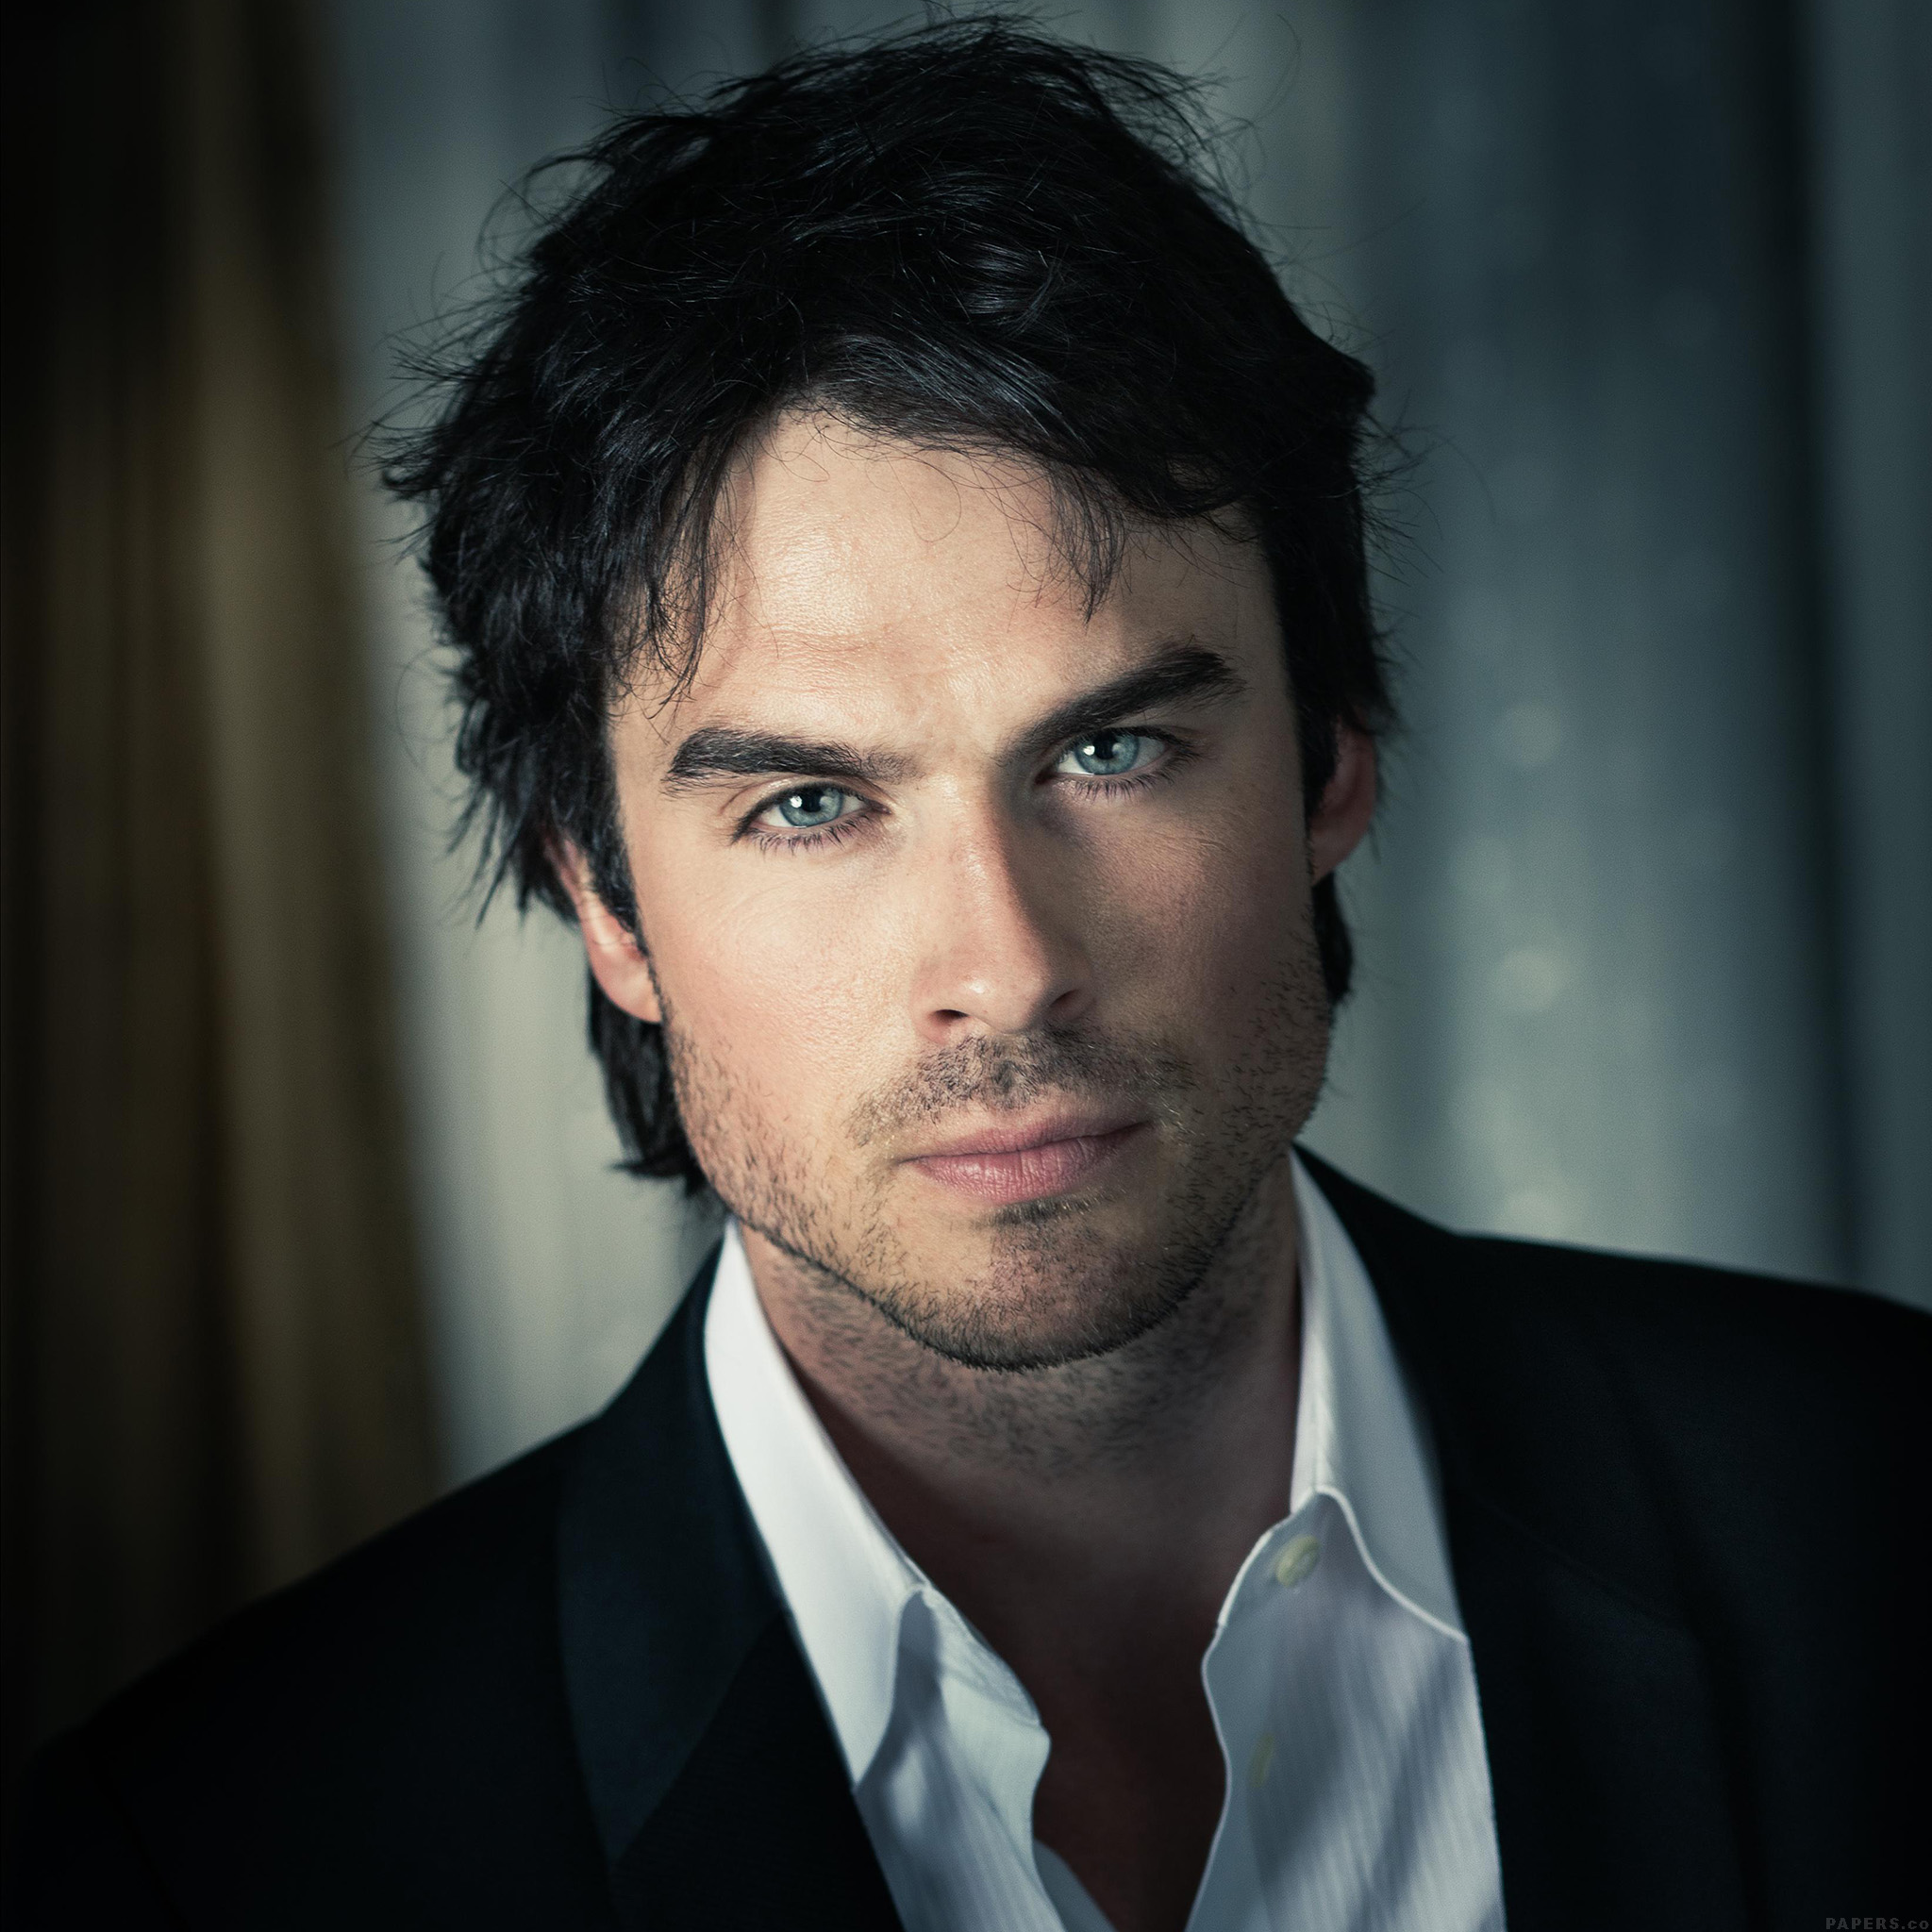 Dark Wallpapers For Iphone X He05 Ian Somerhalder Actor Model Celebrity